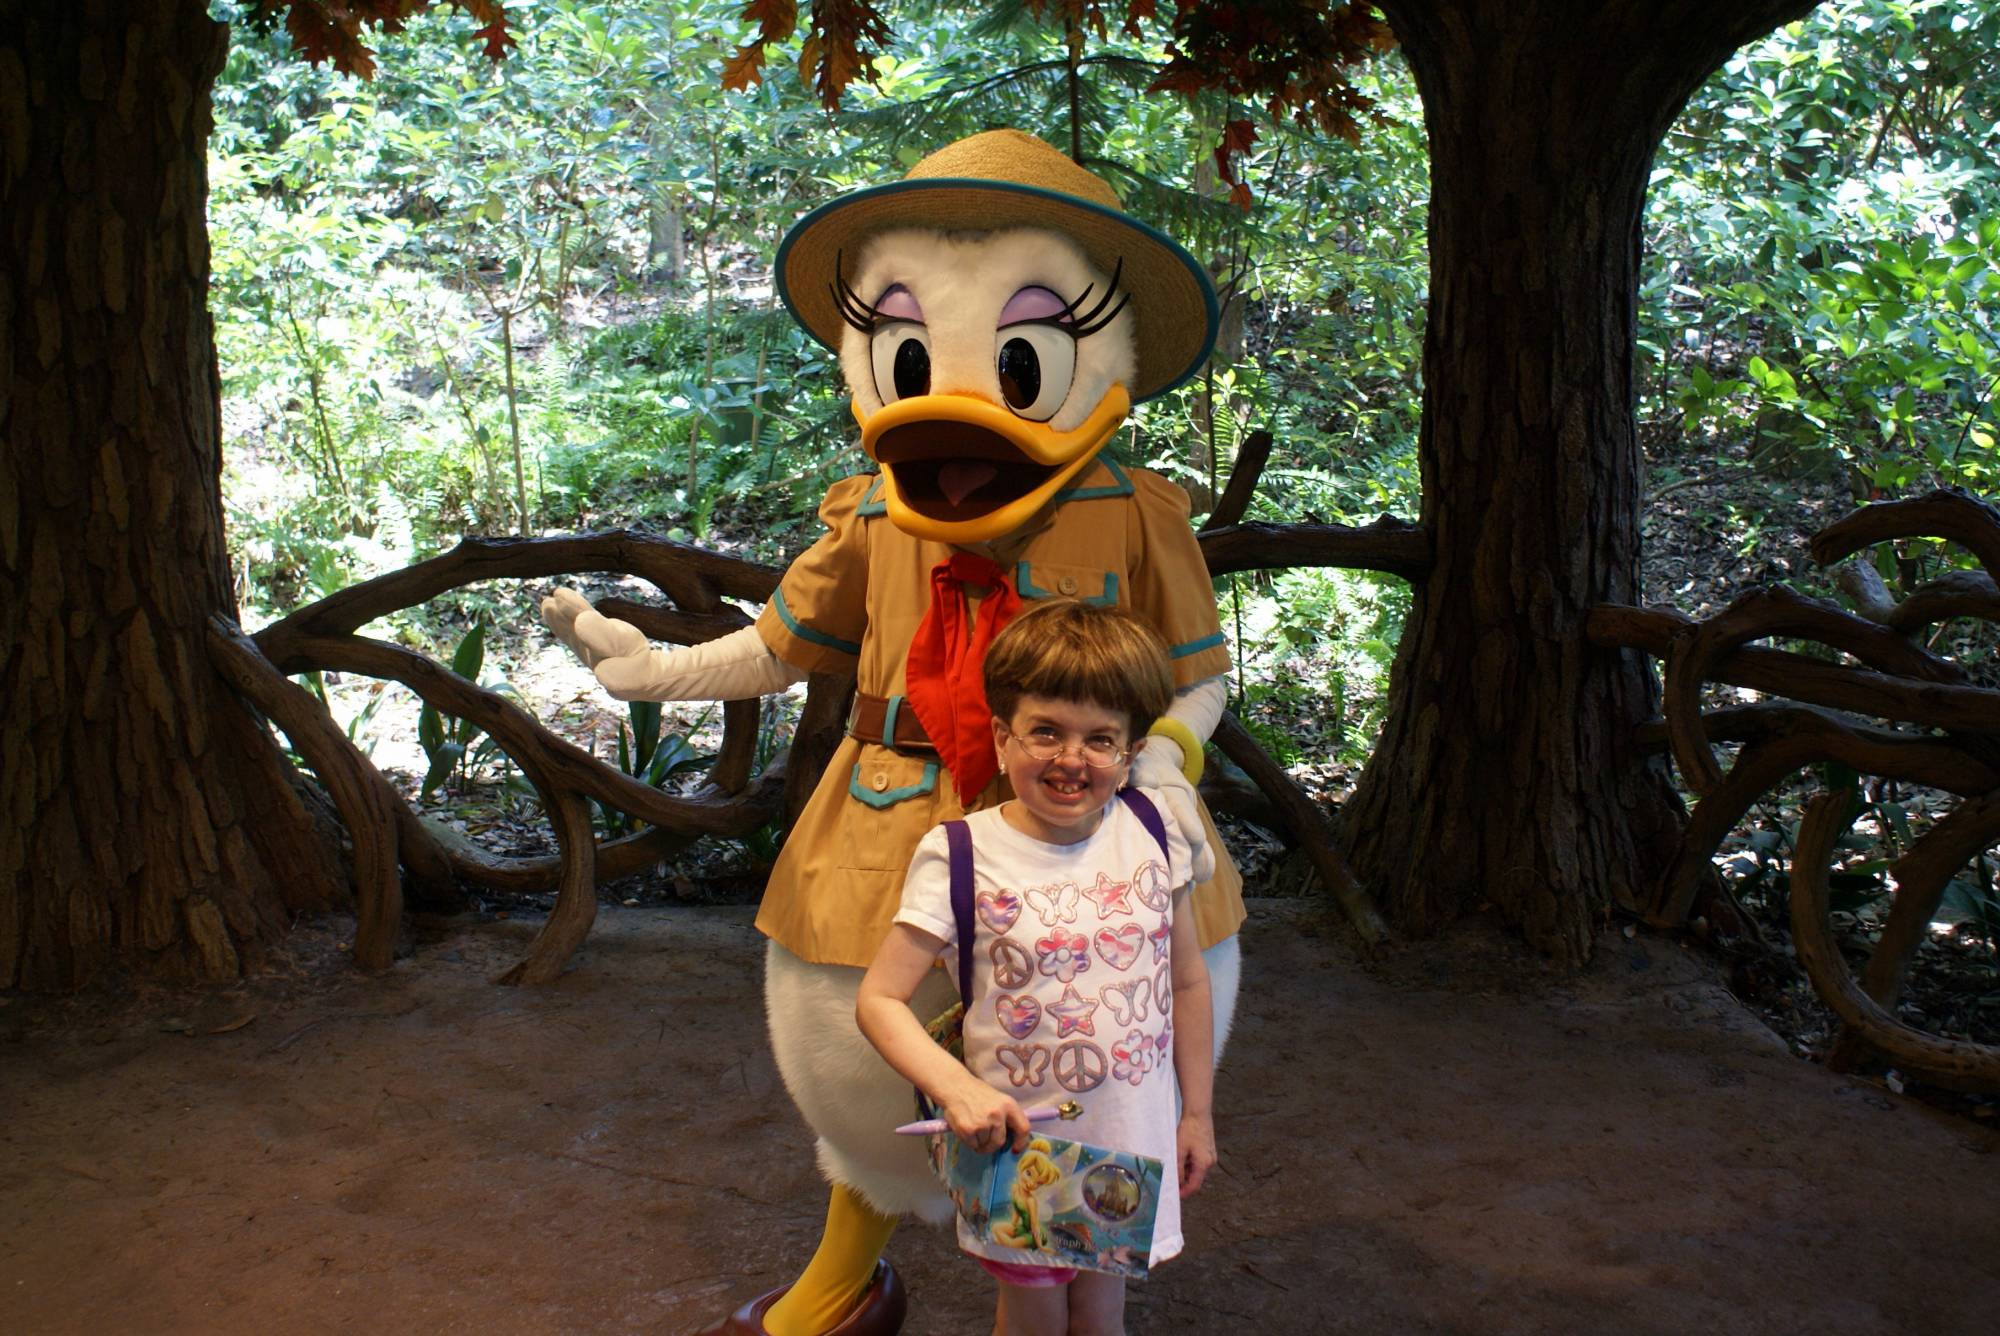 Posing with Daisy Duck